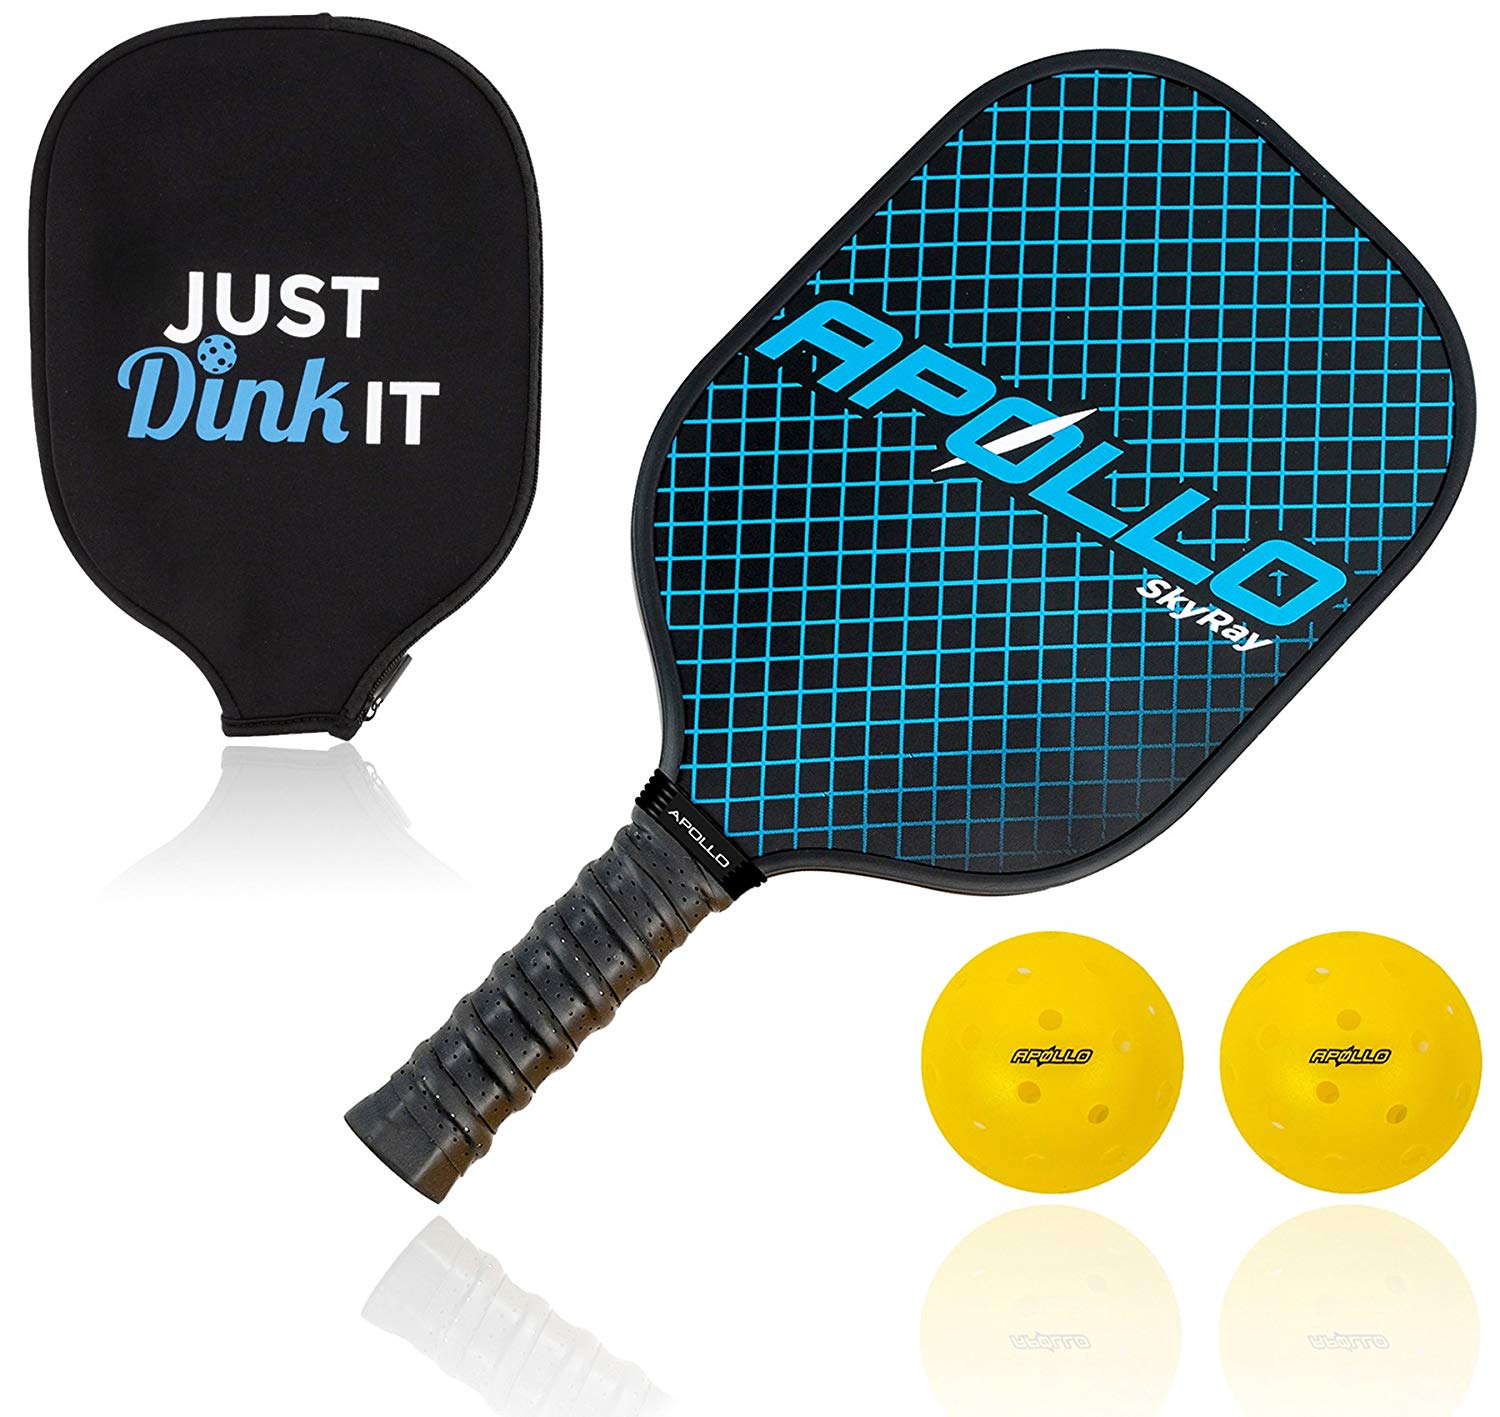 Top 10 Best Pickle ball Paddles in 2021 Reviews